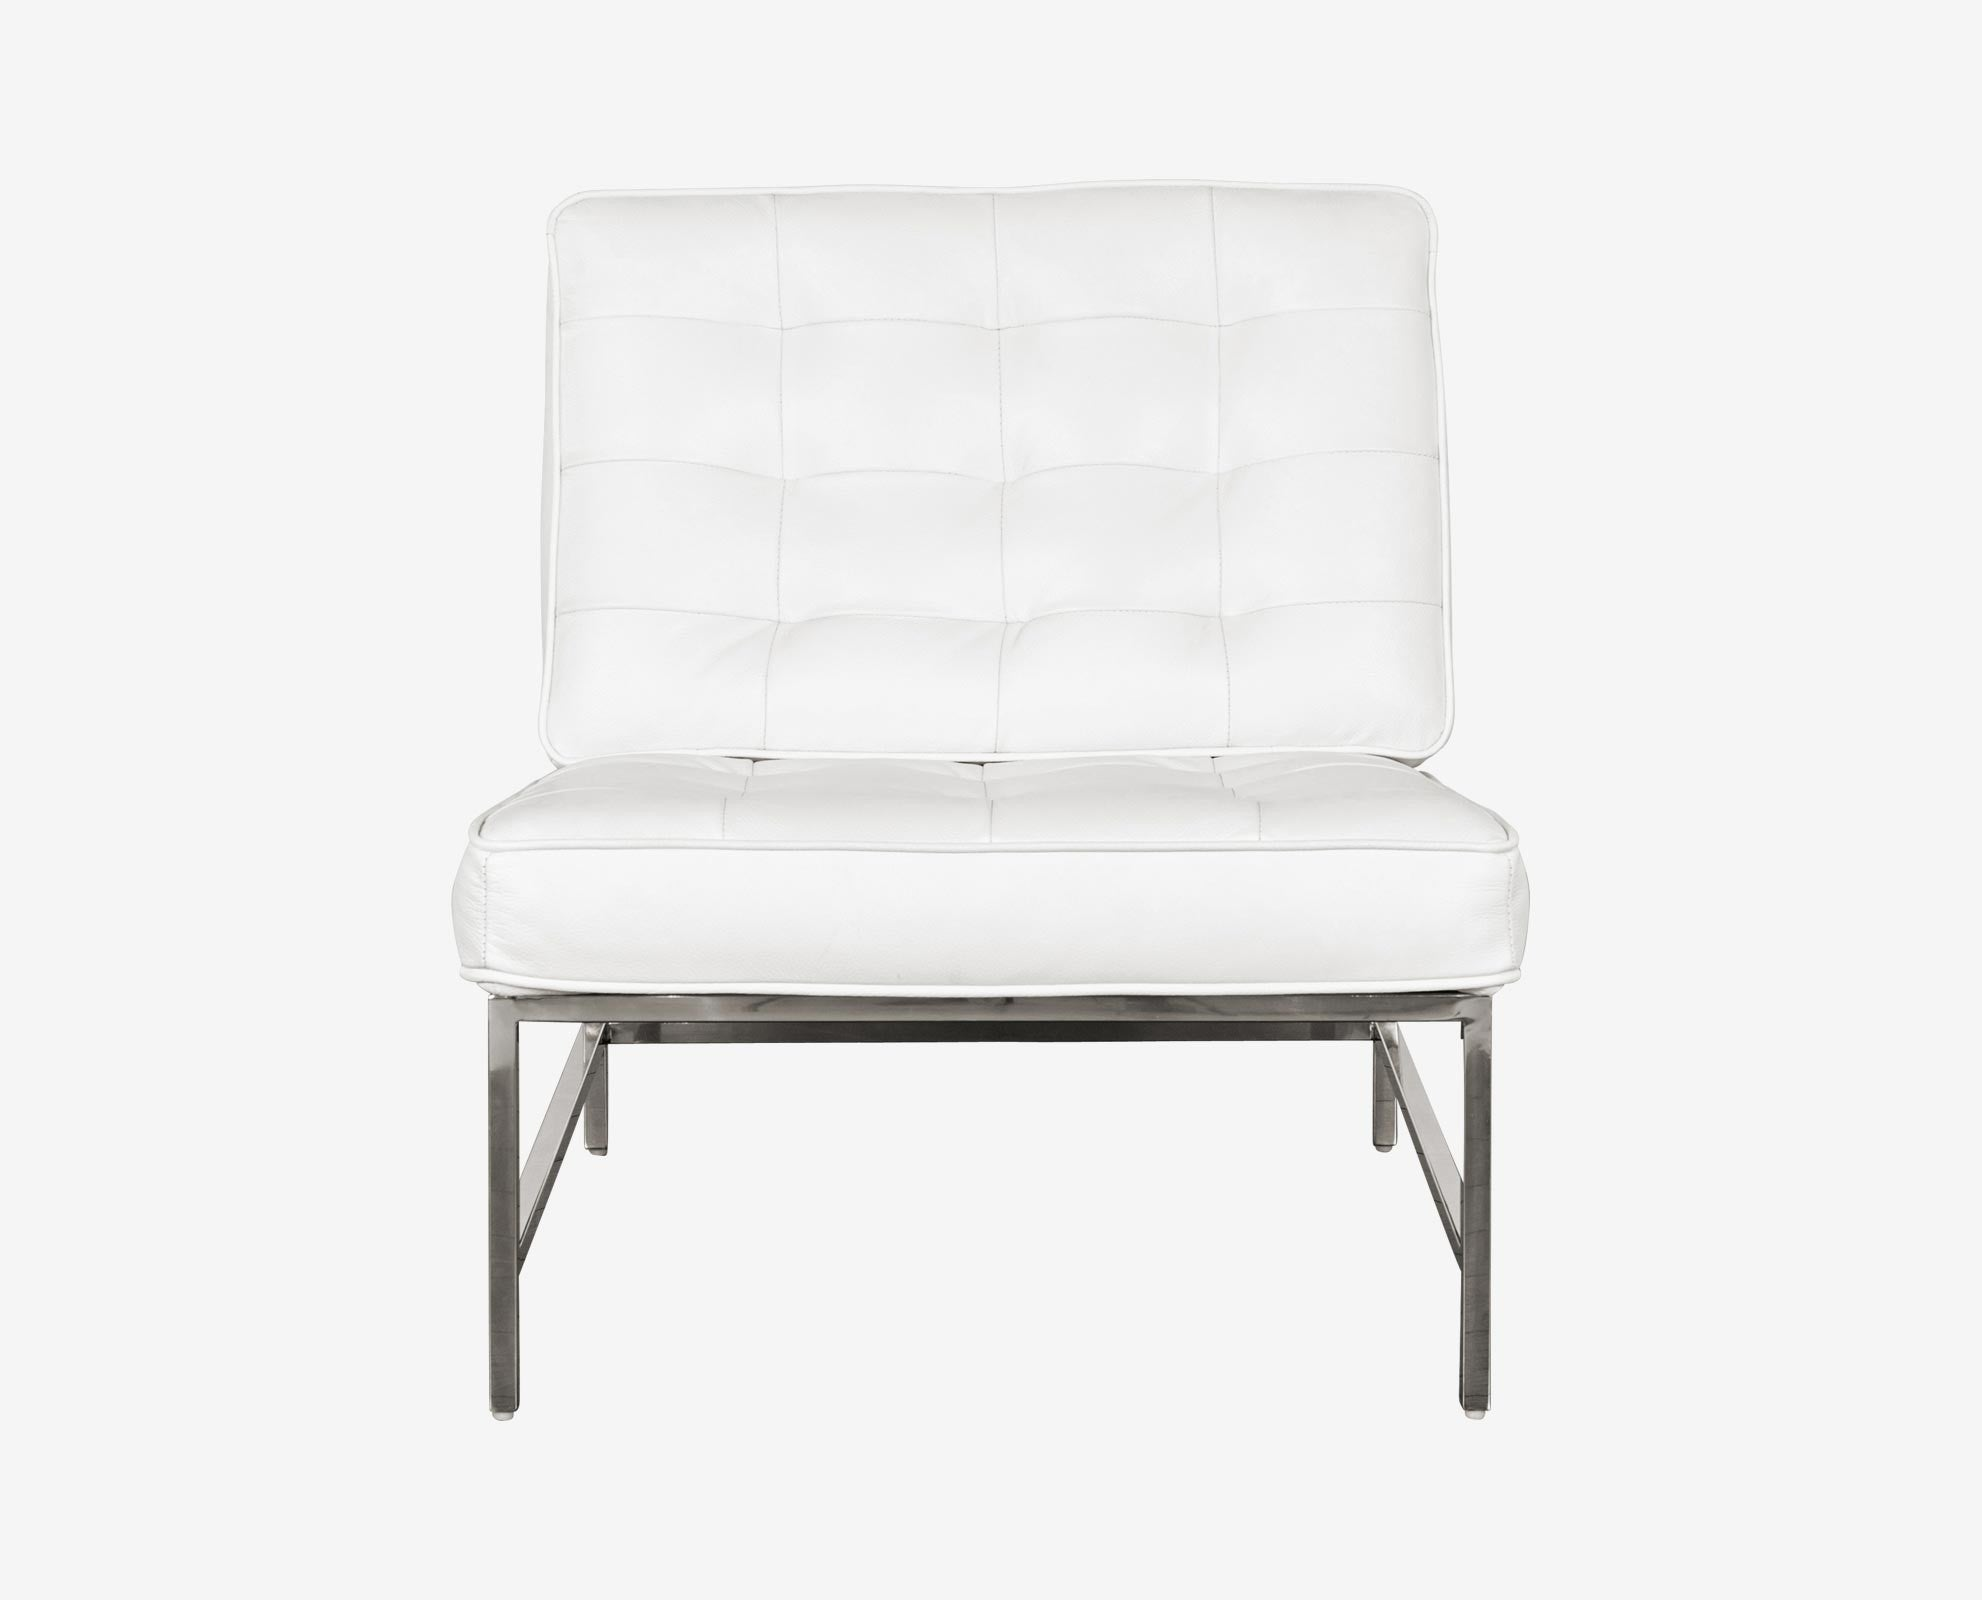 Luxury white modern tufted leather accent chair